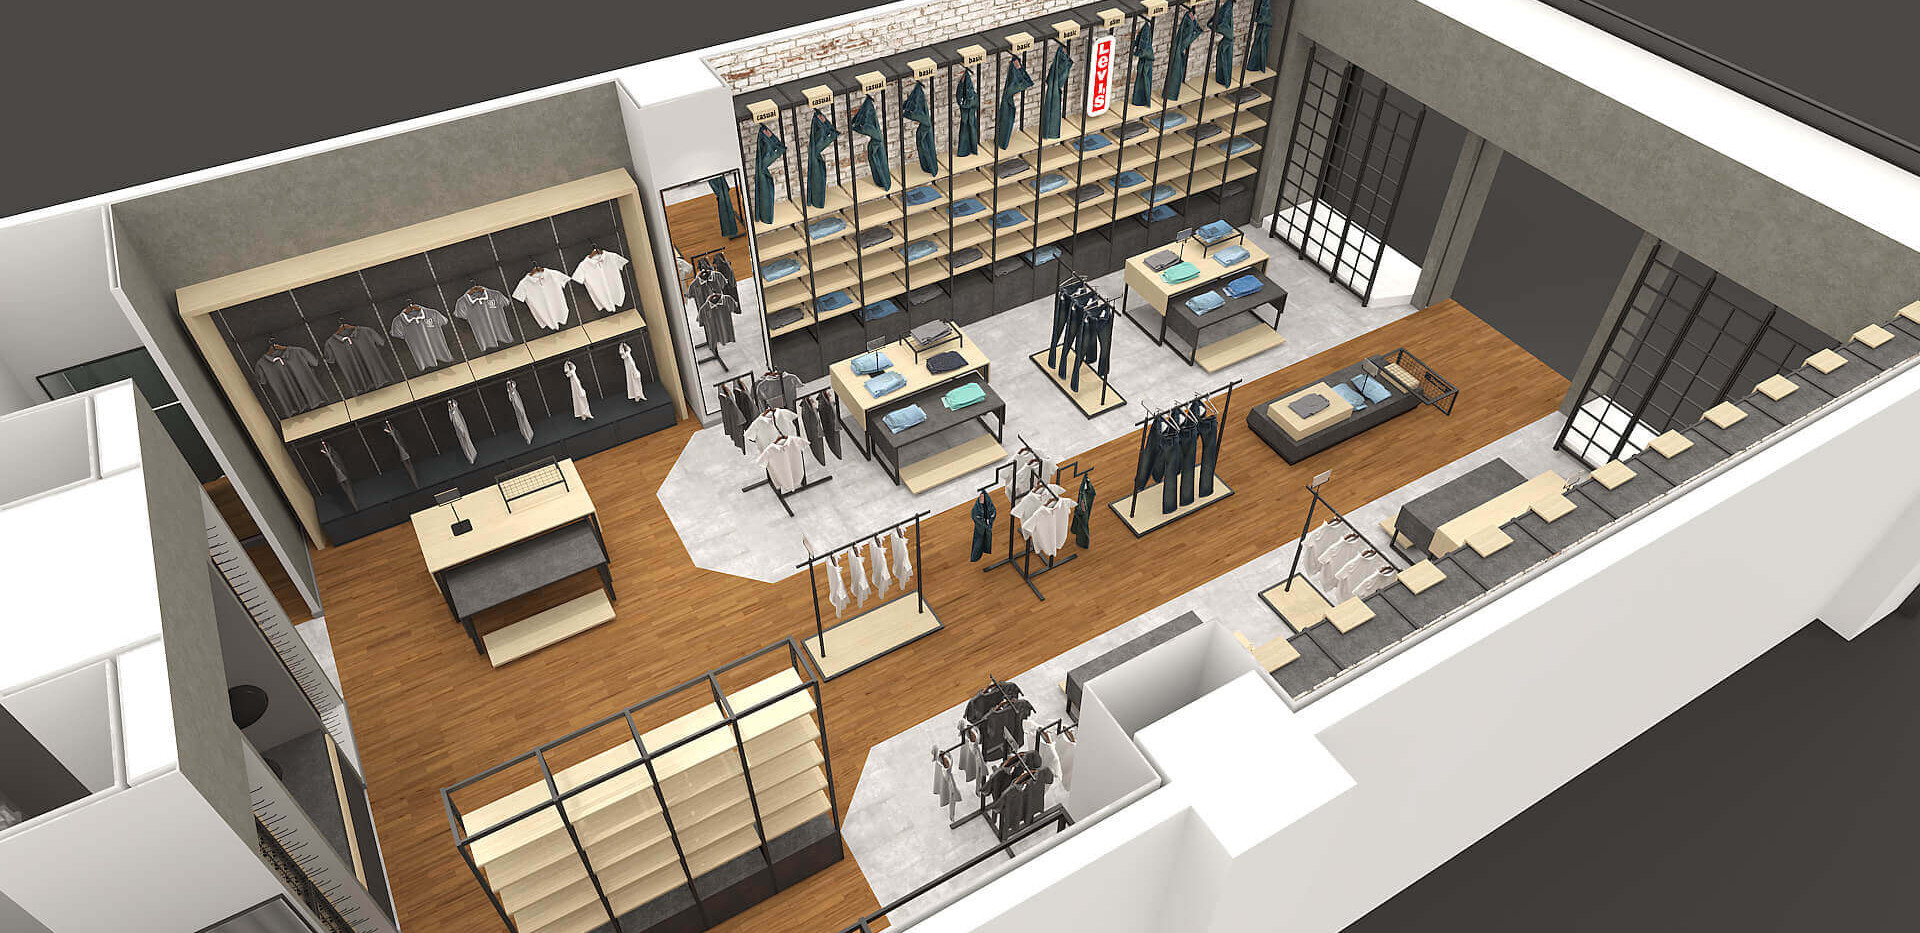 Dequell - Denim Store Shop Design-10.jpg